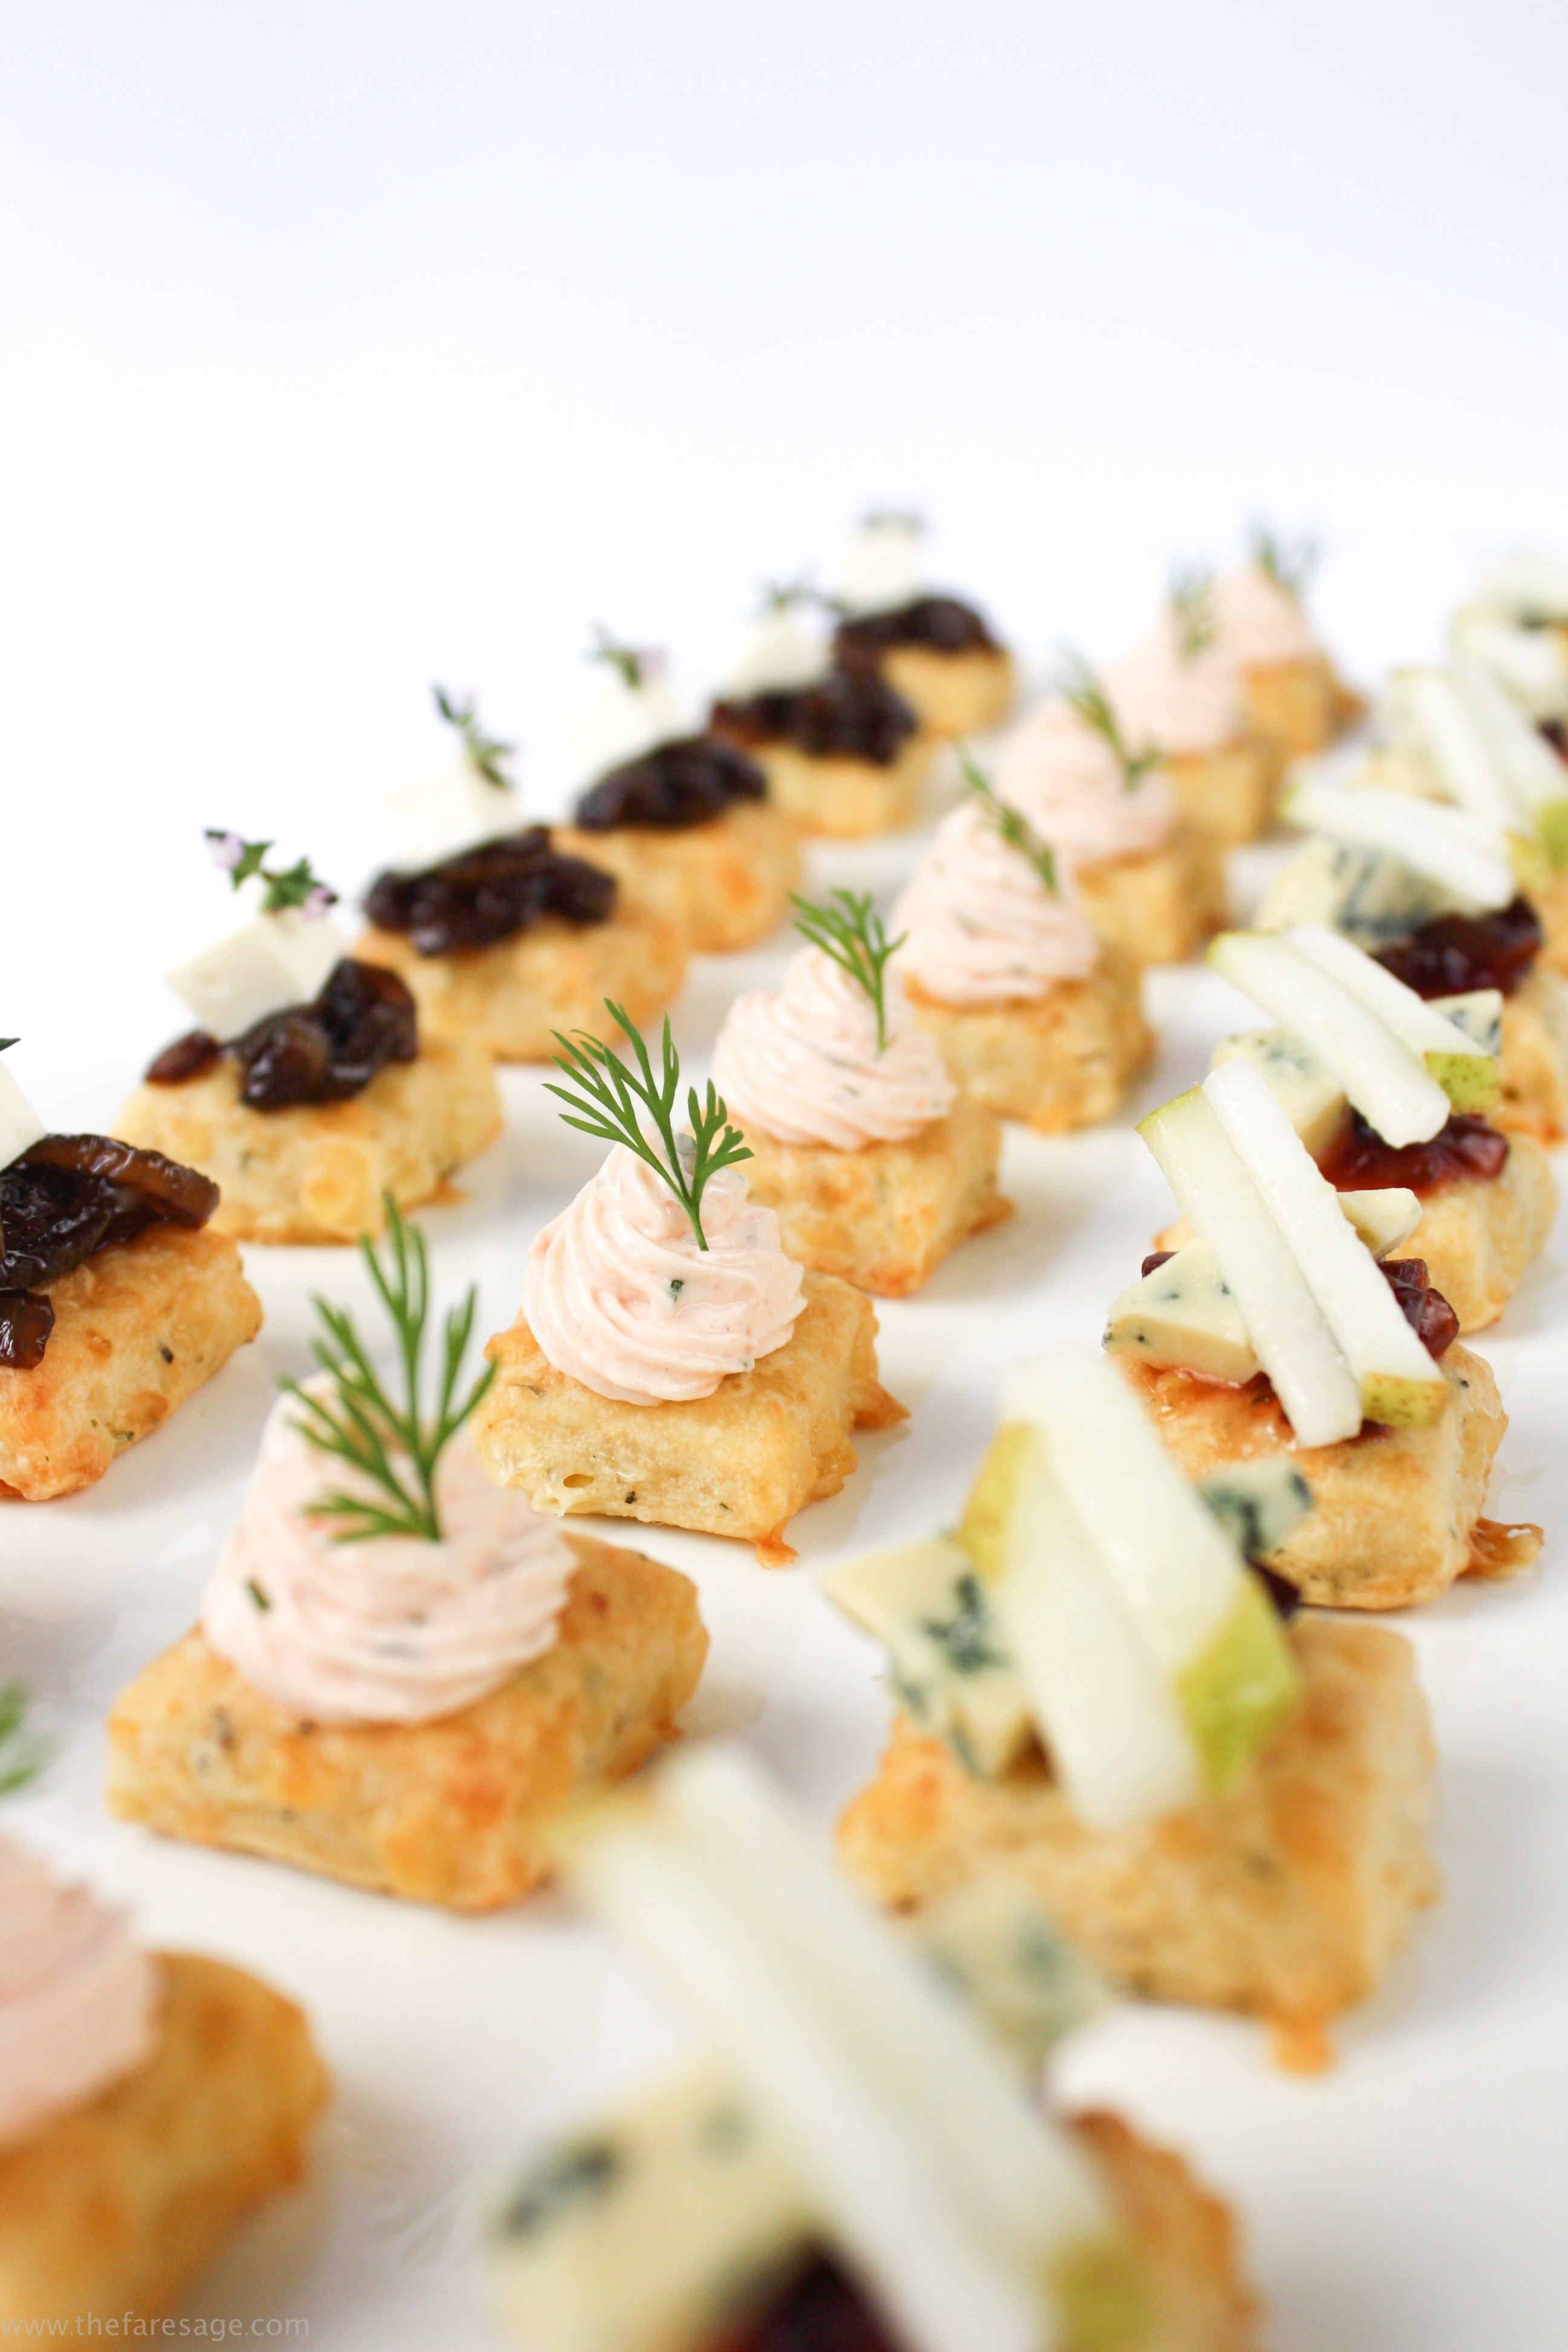 Smoked salmon mousse the fare sage for Smoked salmon mousse canape